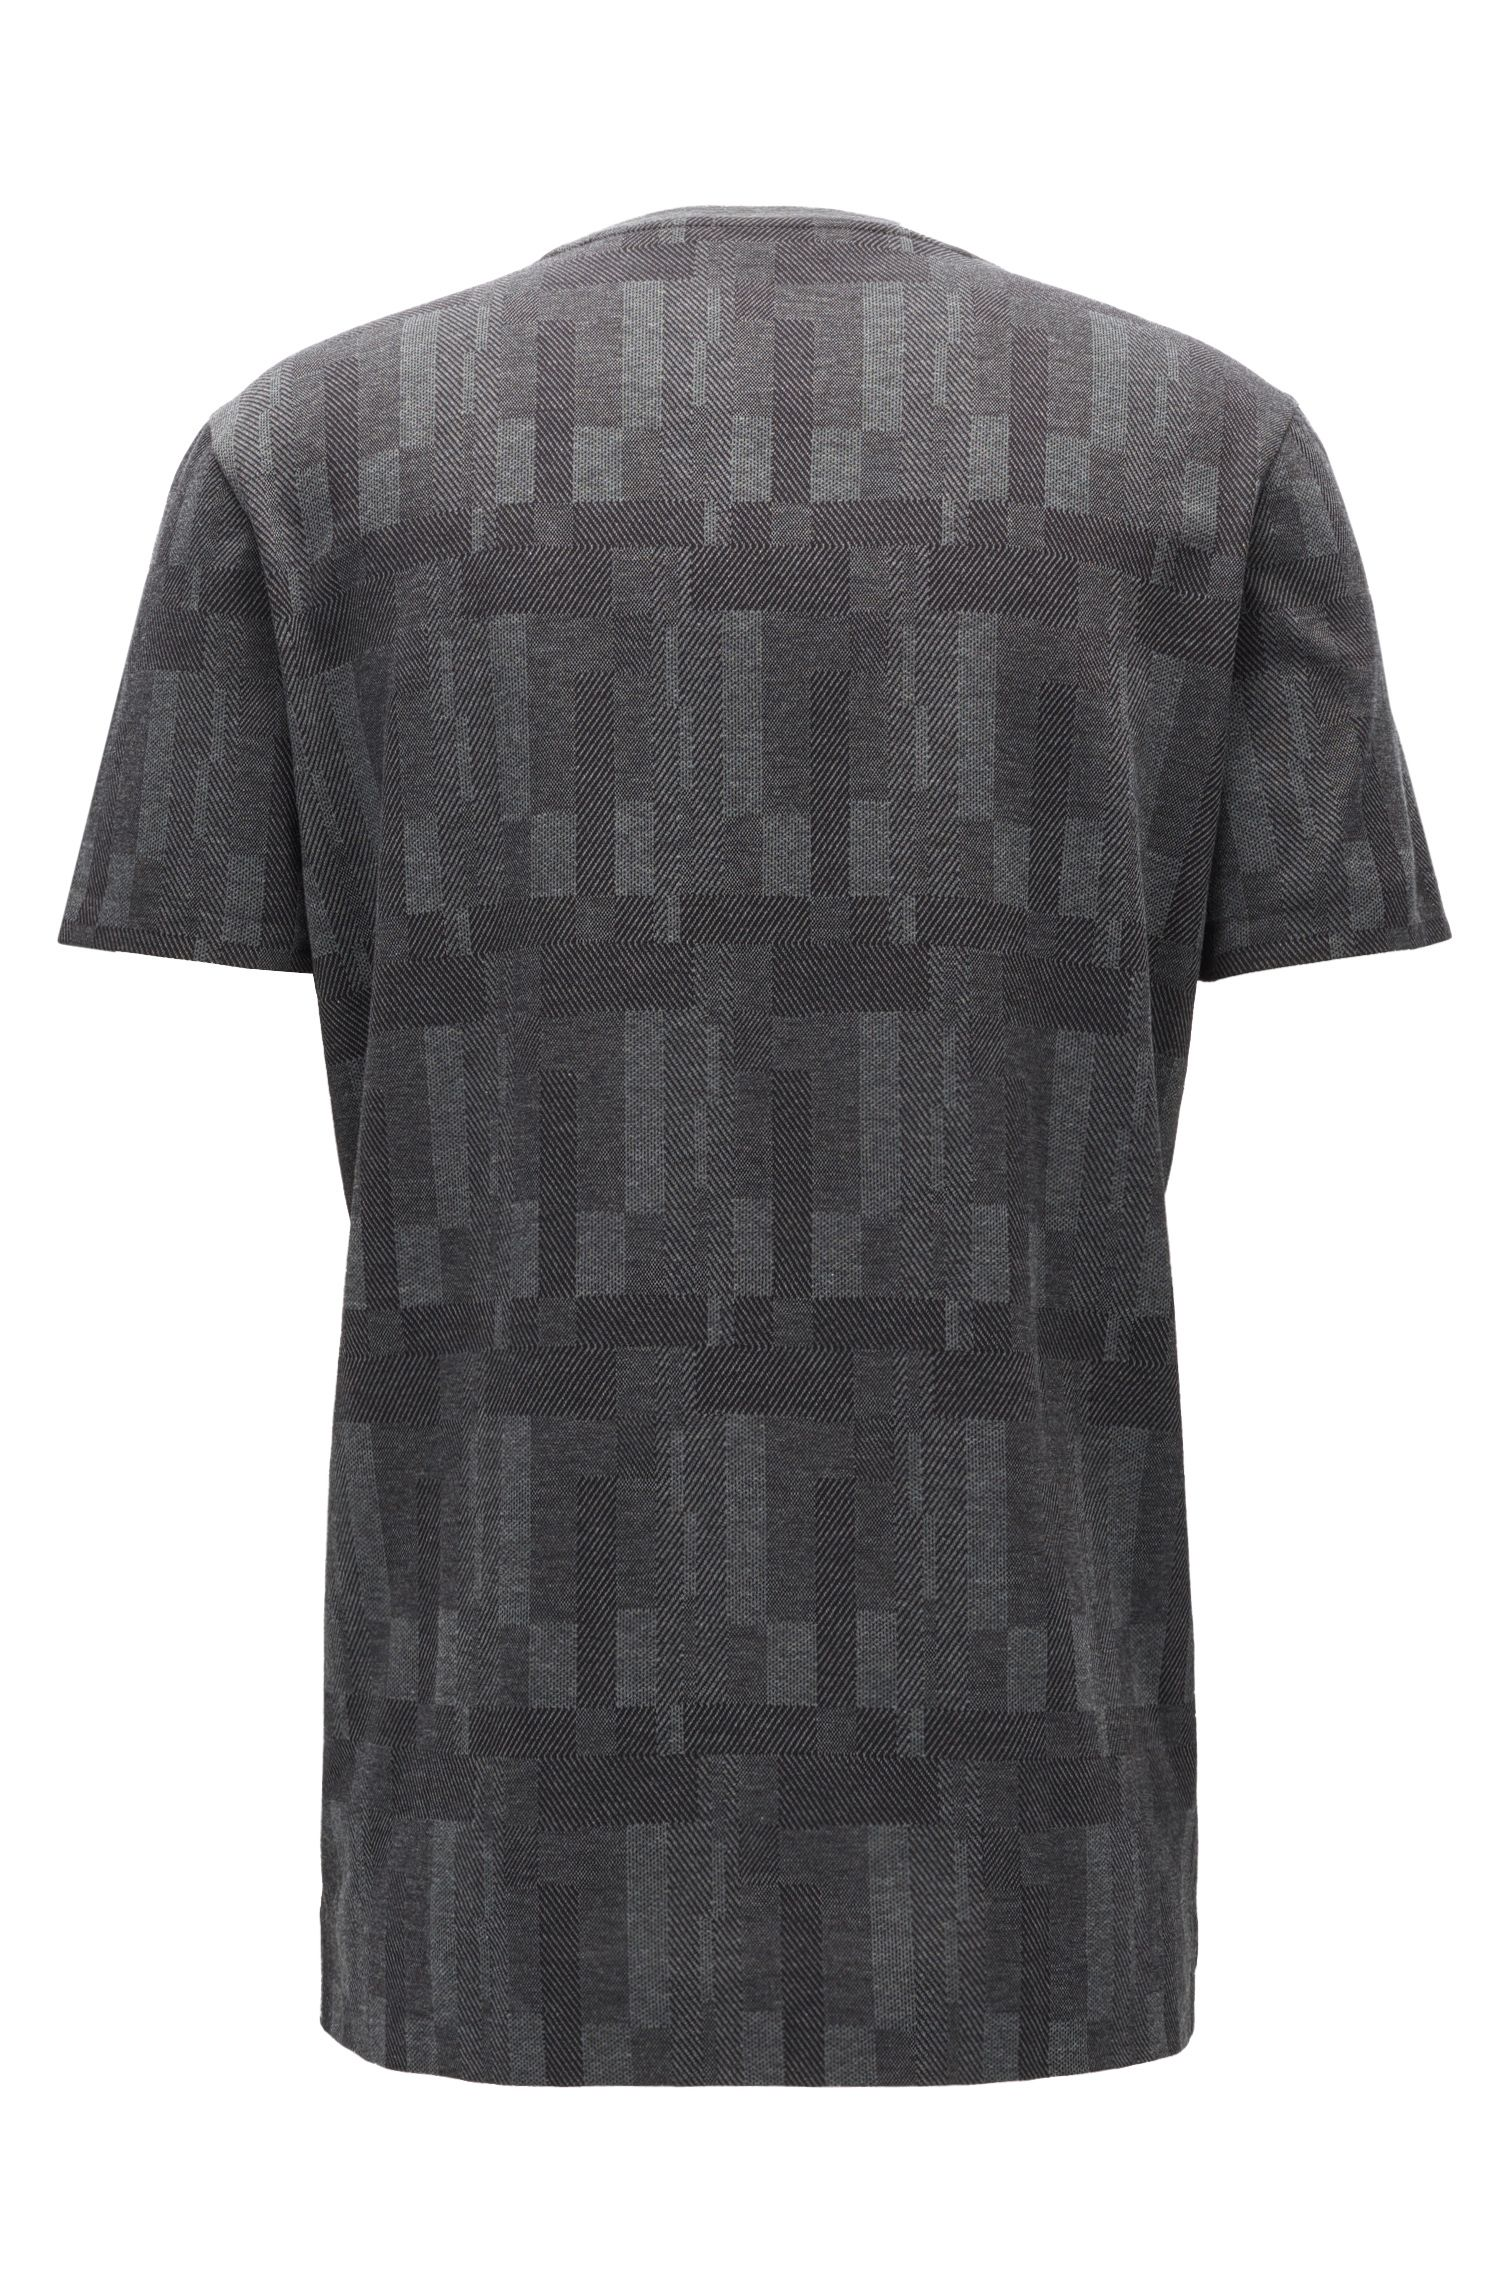 Patterned Egyptian Cotton T-Shirt | Tiburt